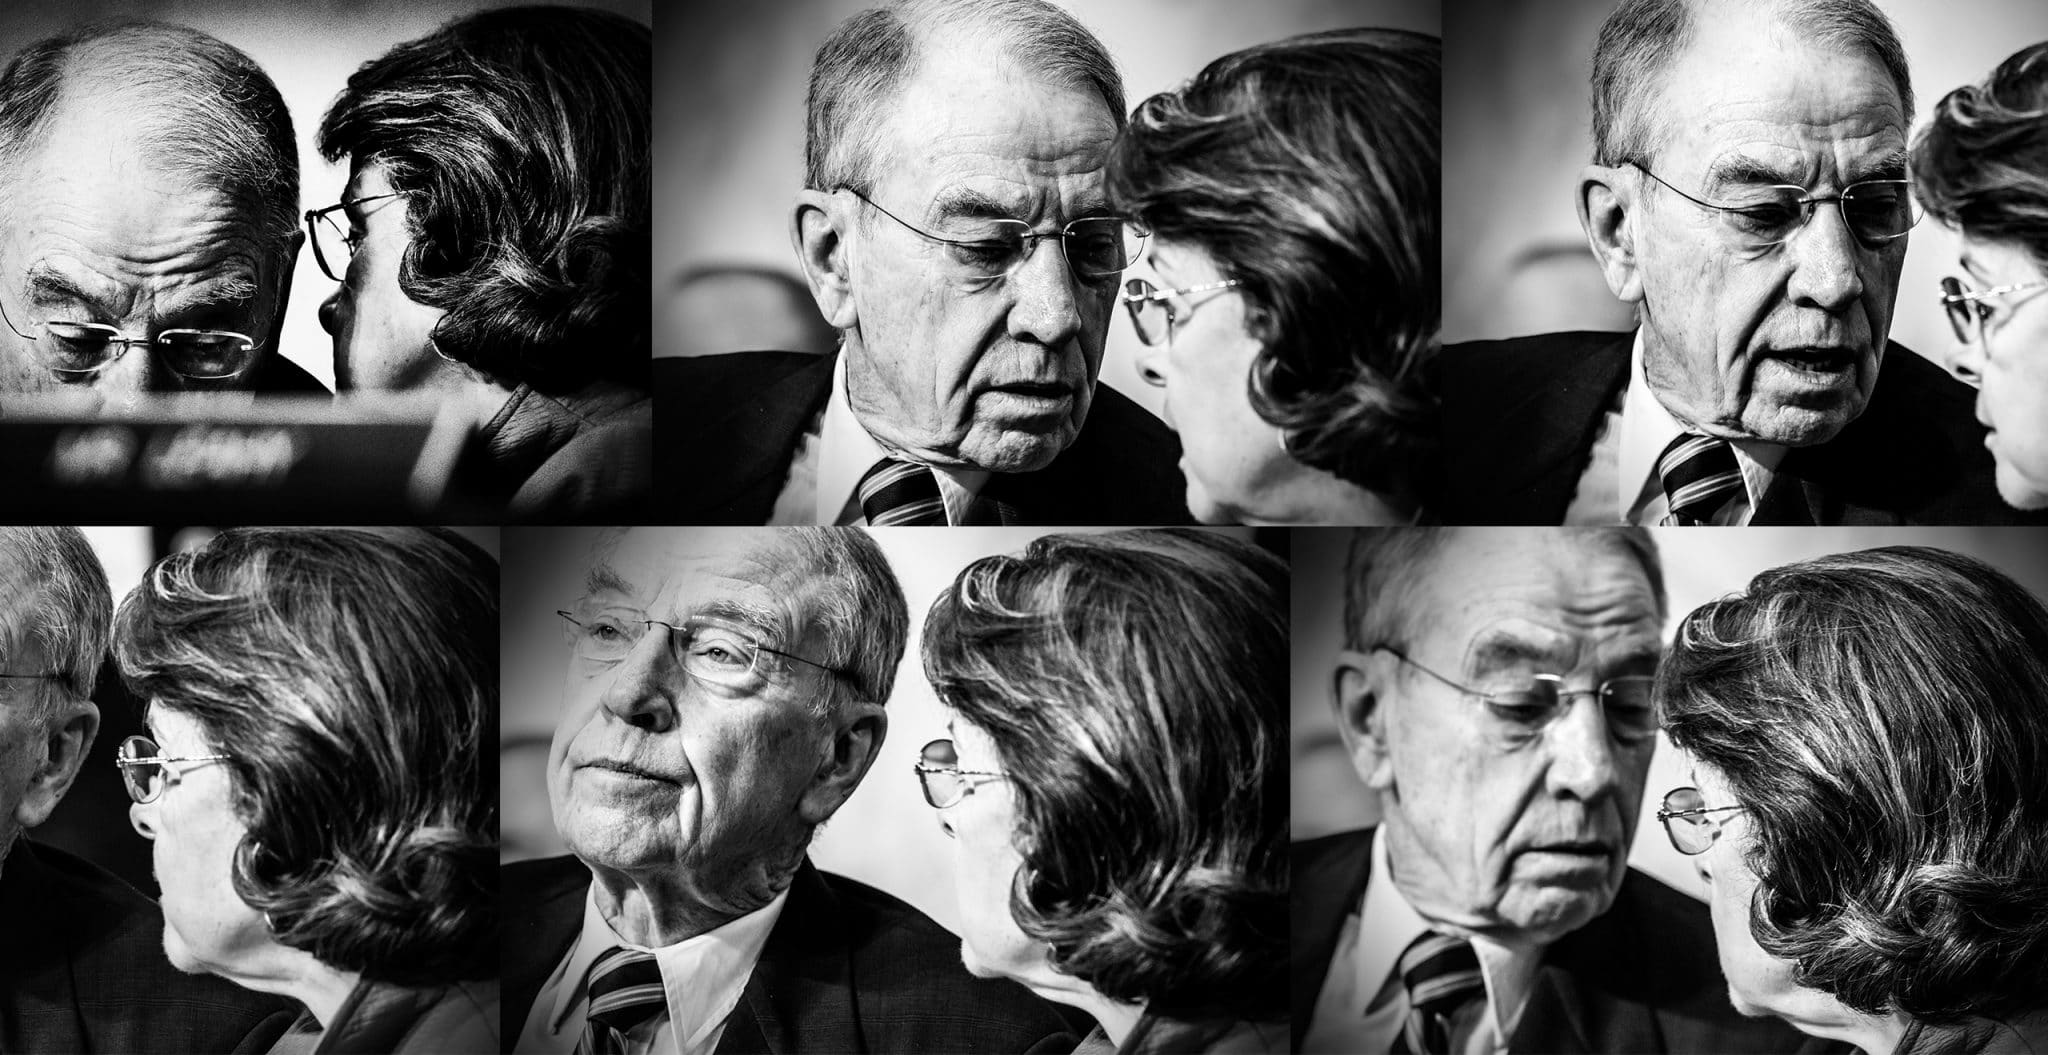 Senators Charles Grassley and Dianne Feinstein during opening statements in the confirmation hearing of Neil Gorsuch, on March 20, 2017.